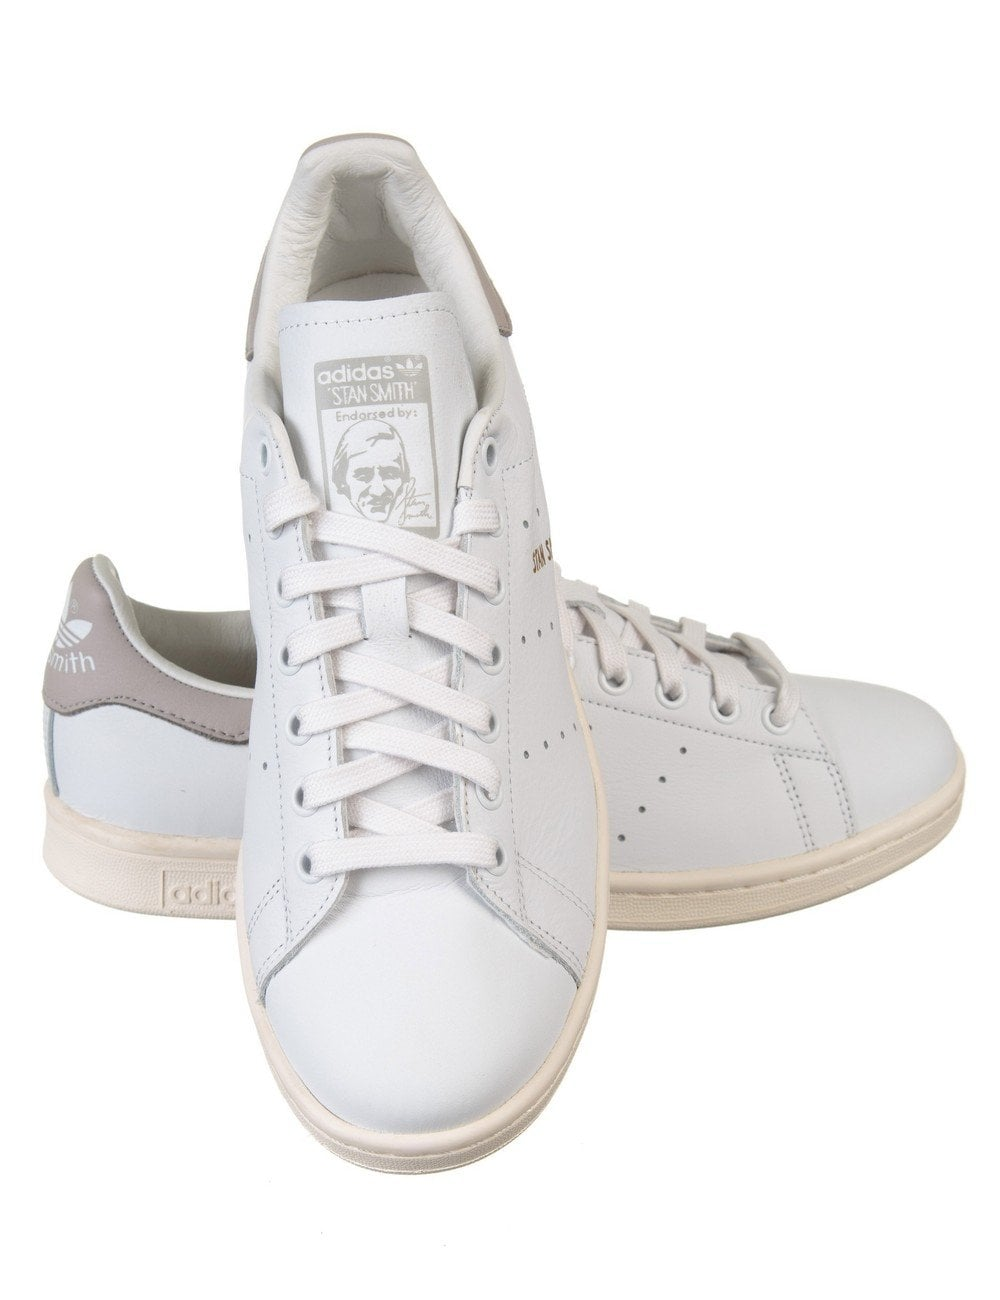 newest 8aae4 c1d5e Stan Smith Shoes - White/Grey